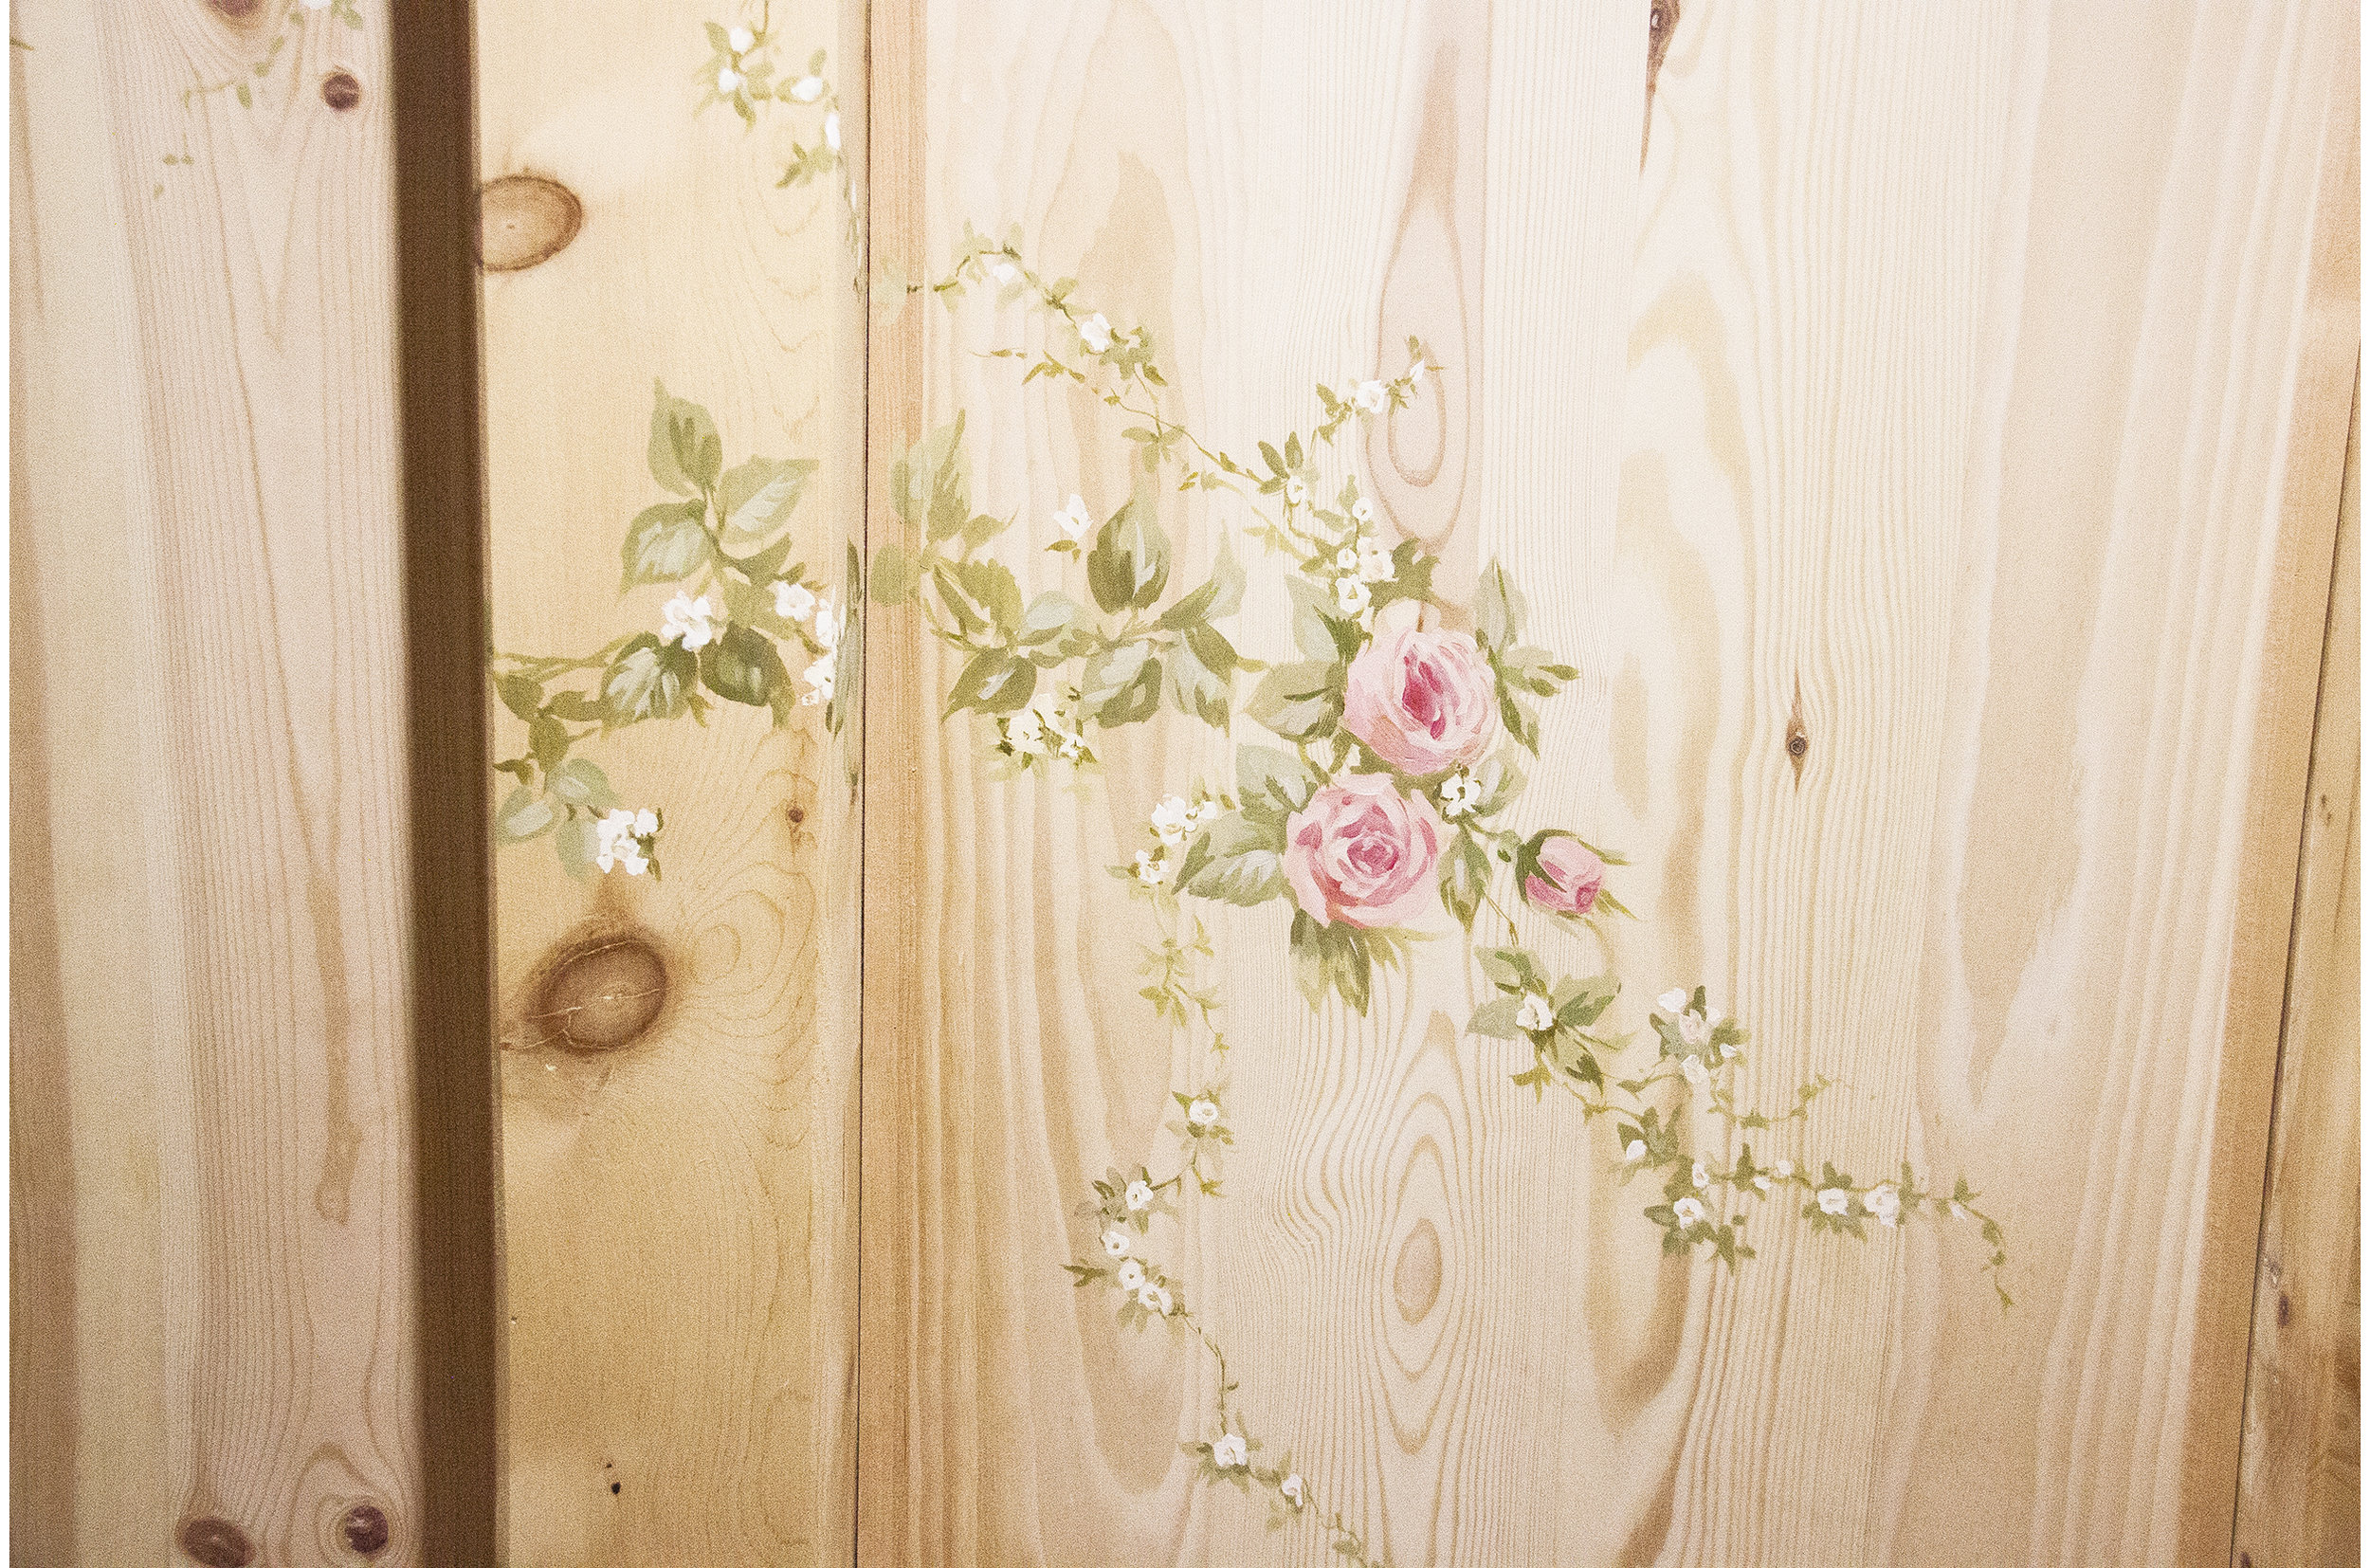 Copy of Wooden ceiling decorated by hand with floral pattern